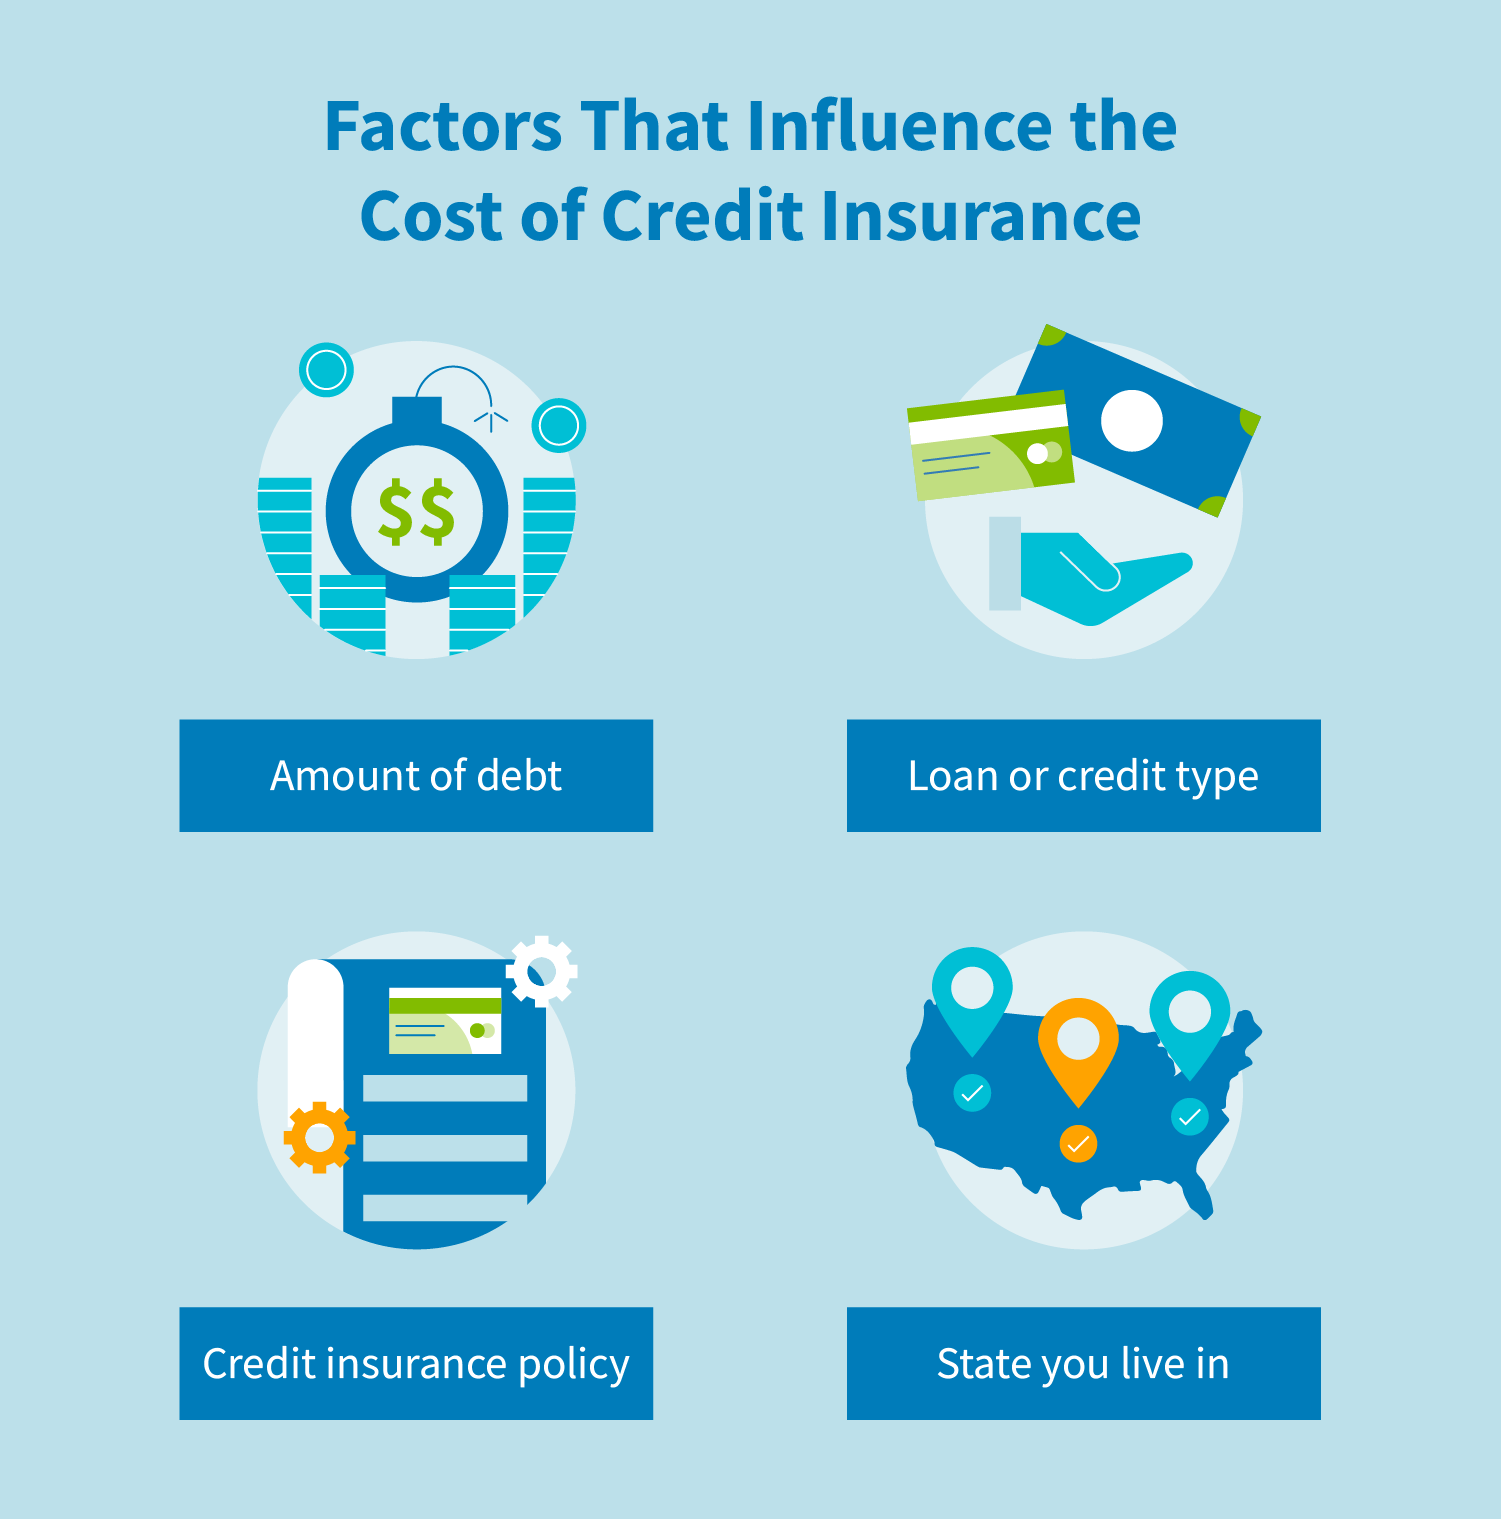 Factors that influence the cost of credit insurance